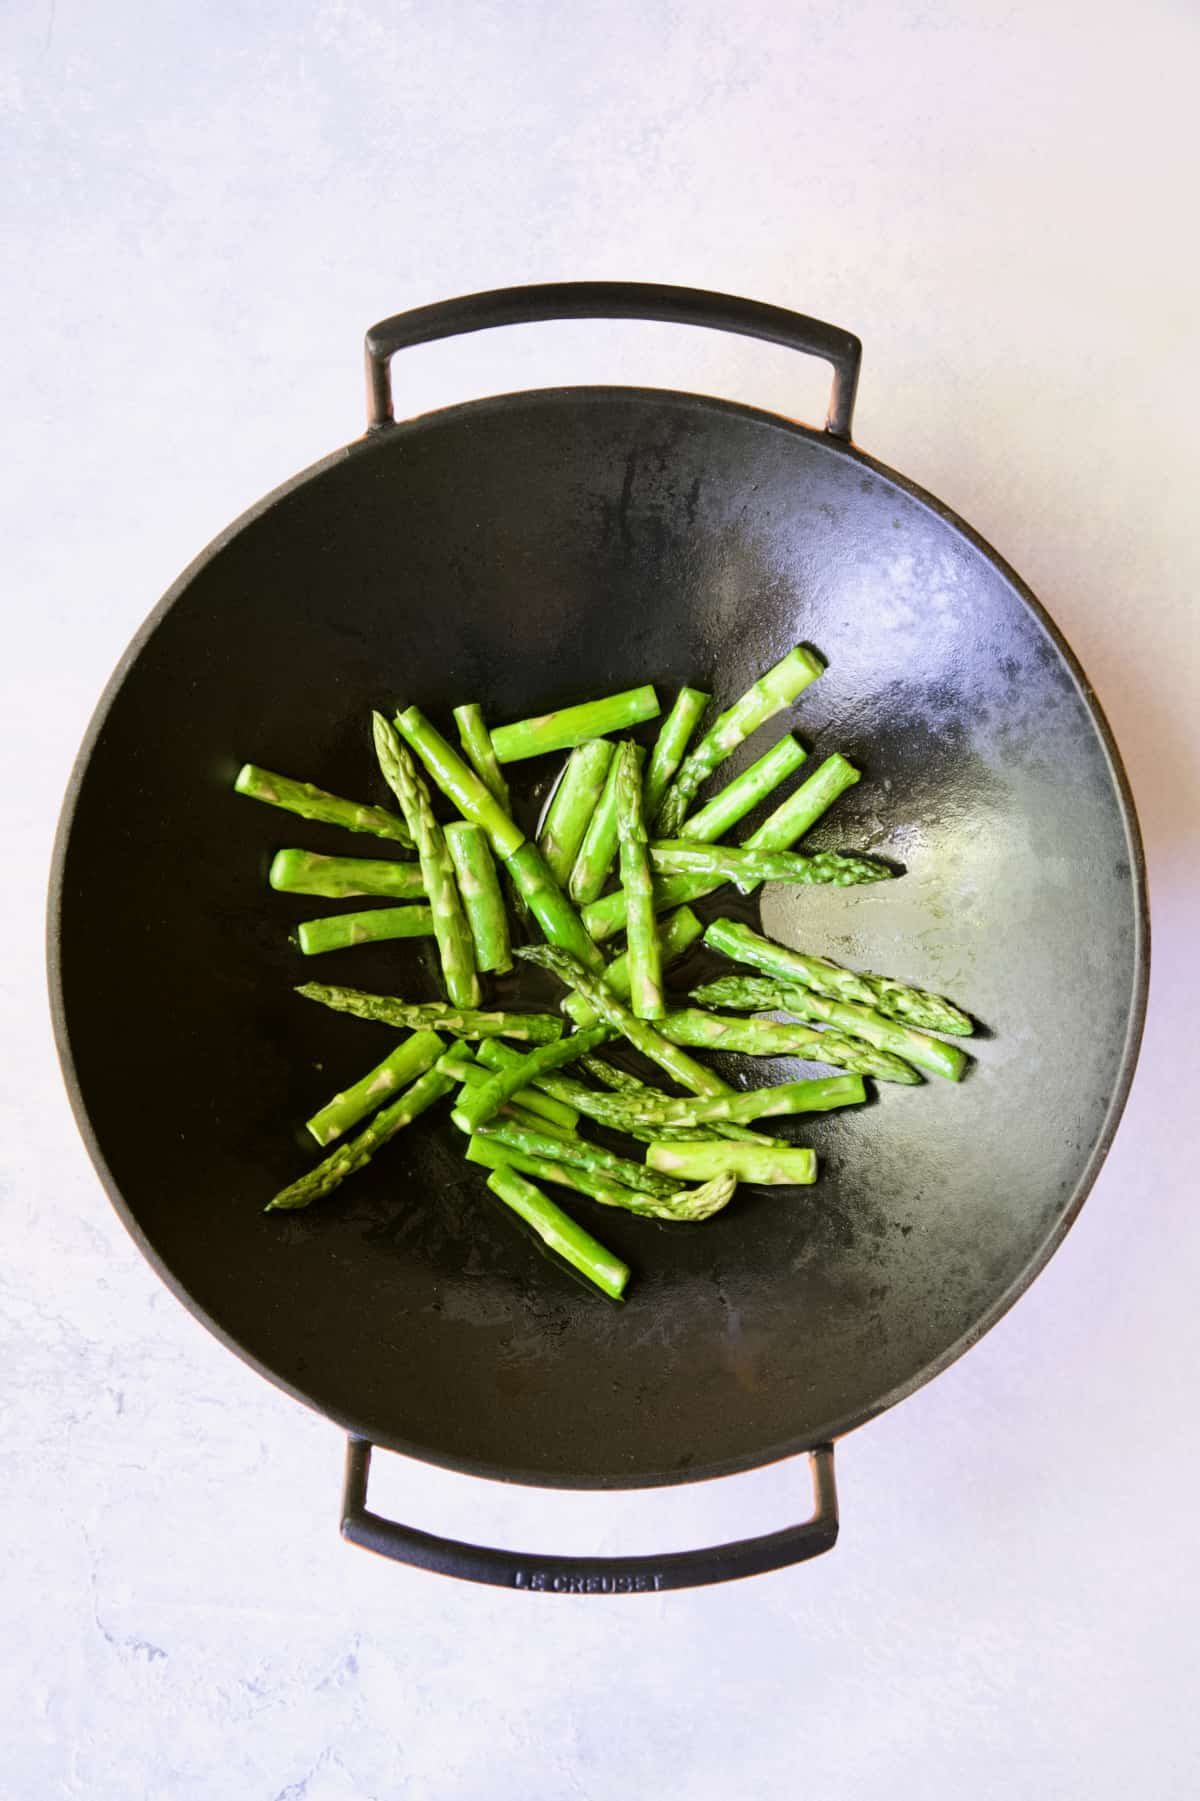 Asparagus being cooked in cast iron wok.